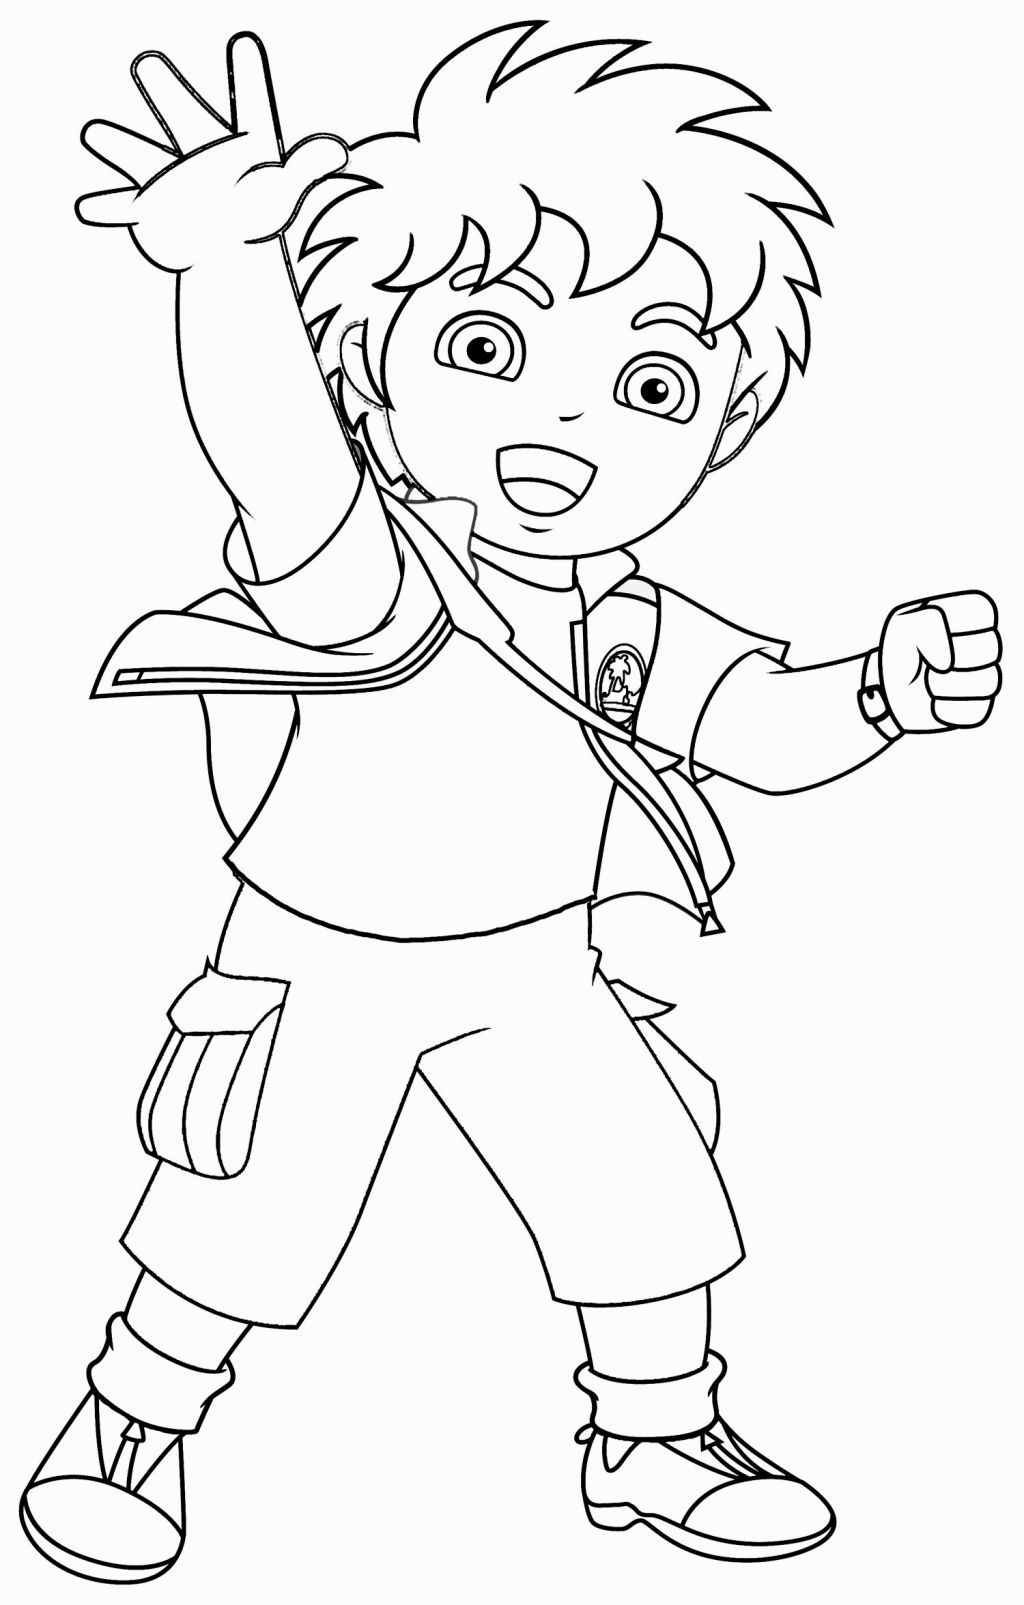 Diego Coloring Page Coloring Pages Free Printable Coloring